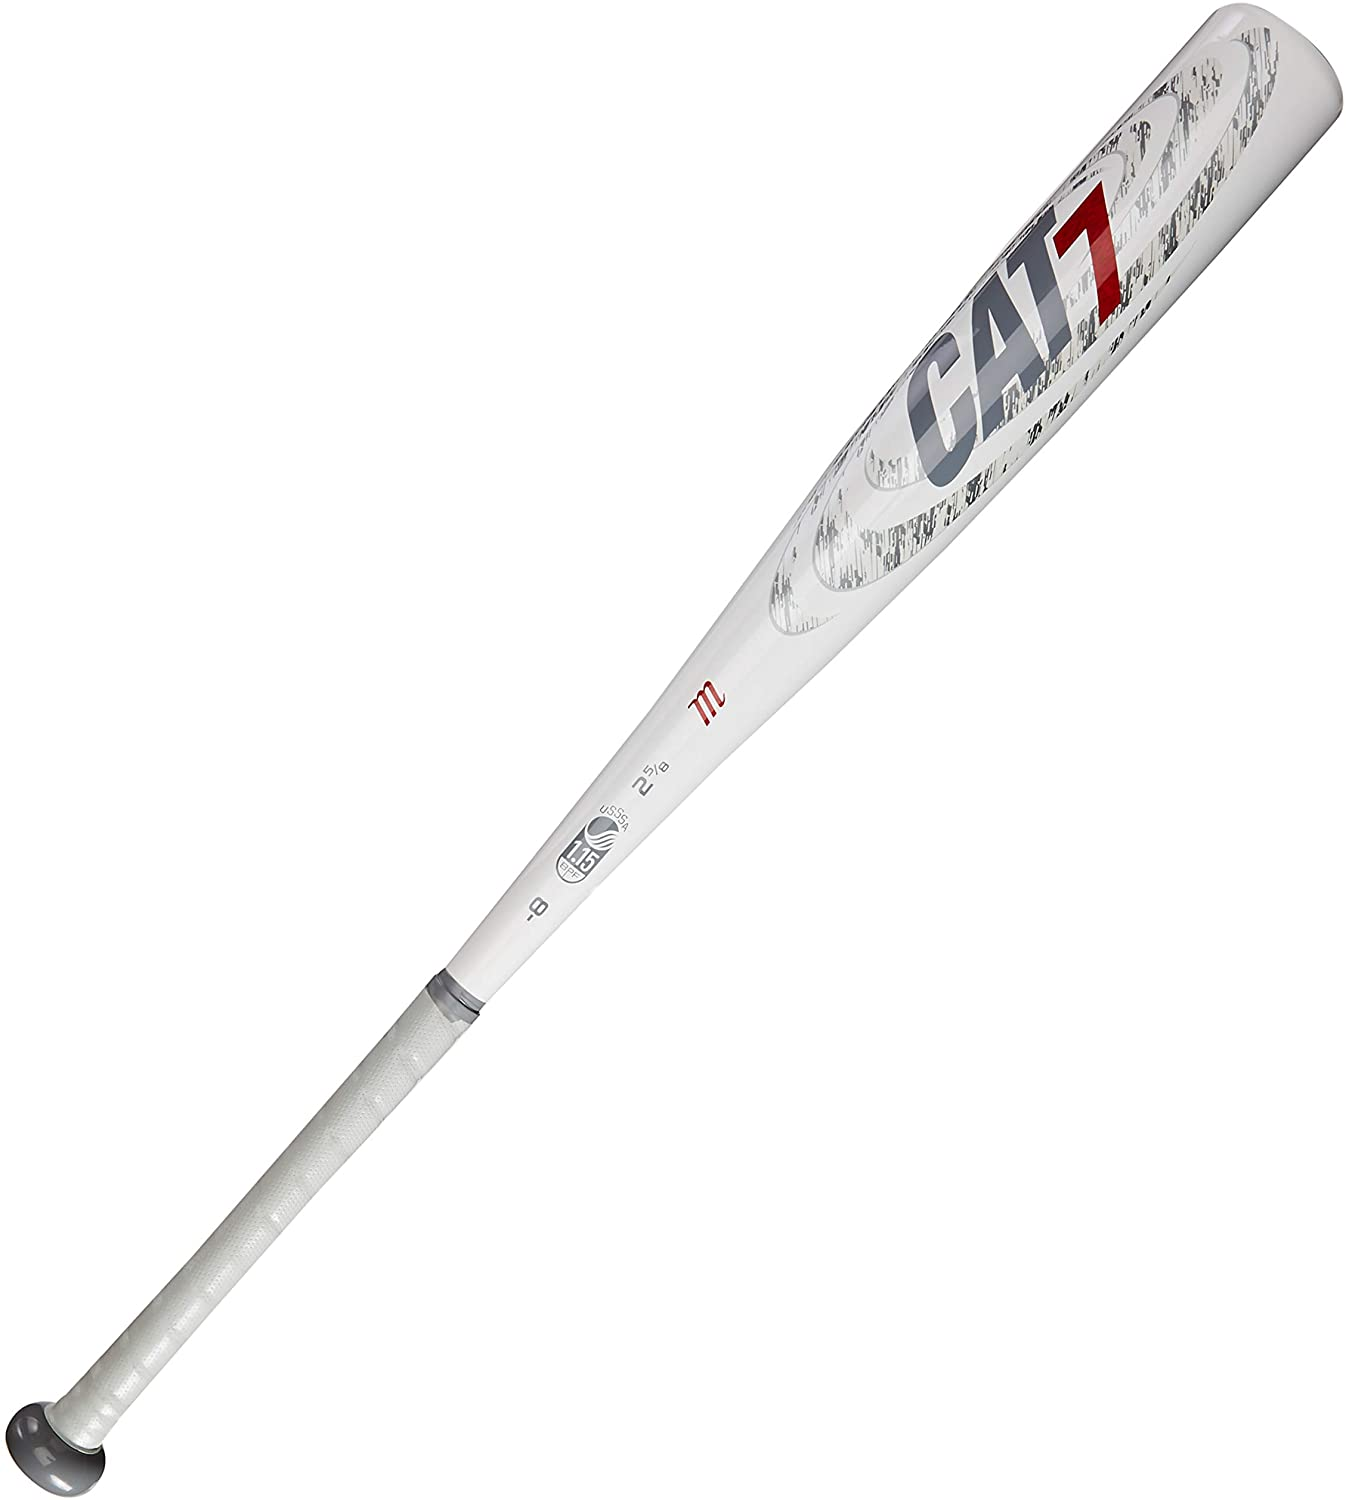 marucci-cat-7-senior-league-baseball-bat-29-in-21-oz MSBYC78-2921 Marucci